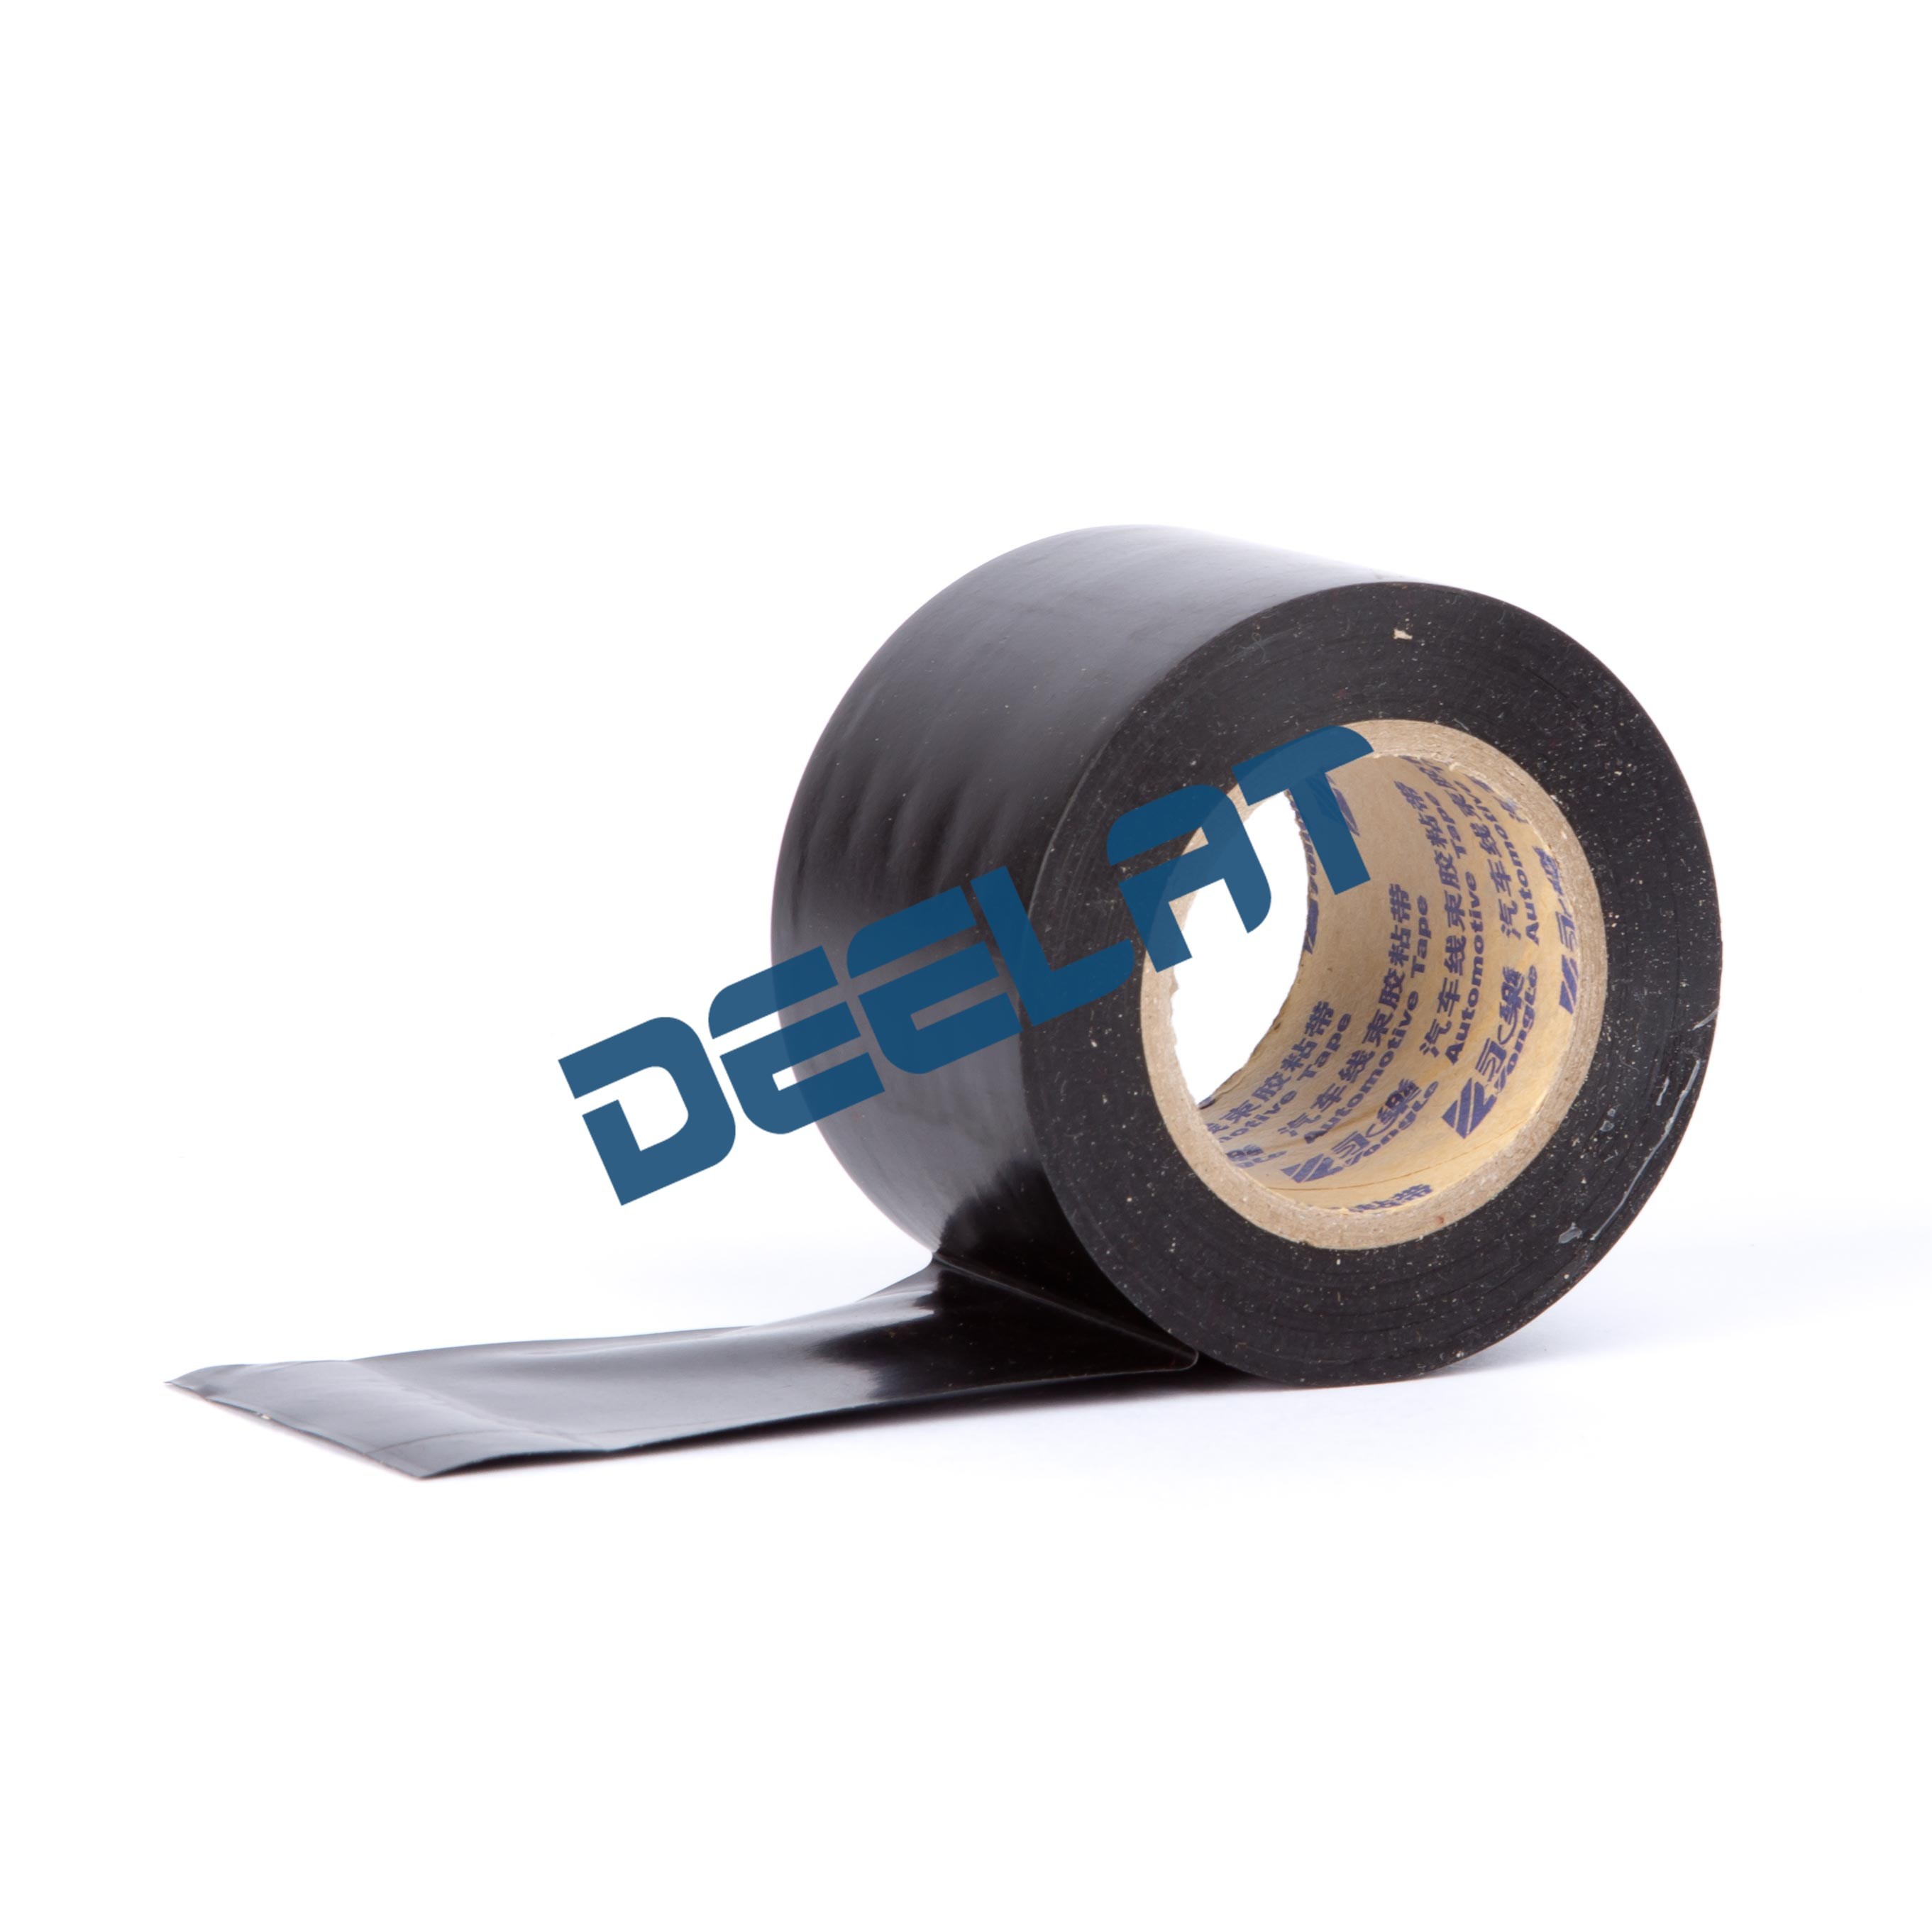 Auto IWre Harness Tape deelat blog automotive wire harness tape uses, types and automotive wiring harness supplies at gsmportal.co